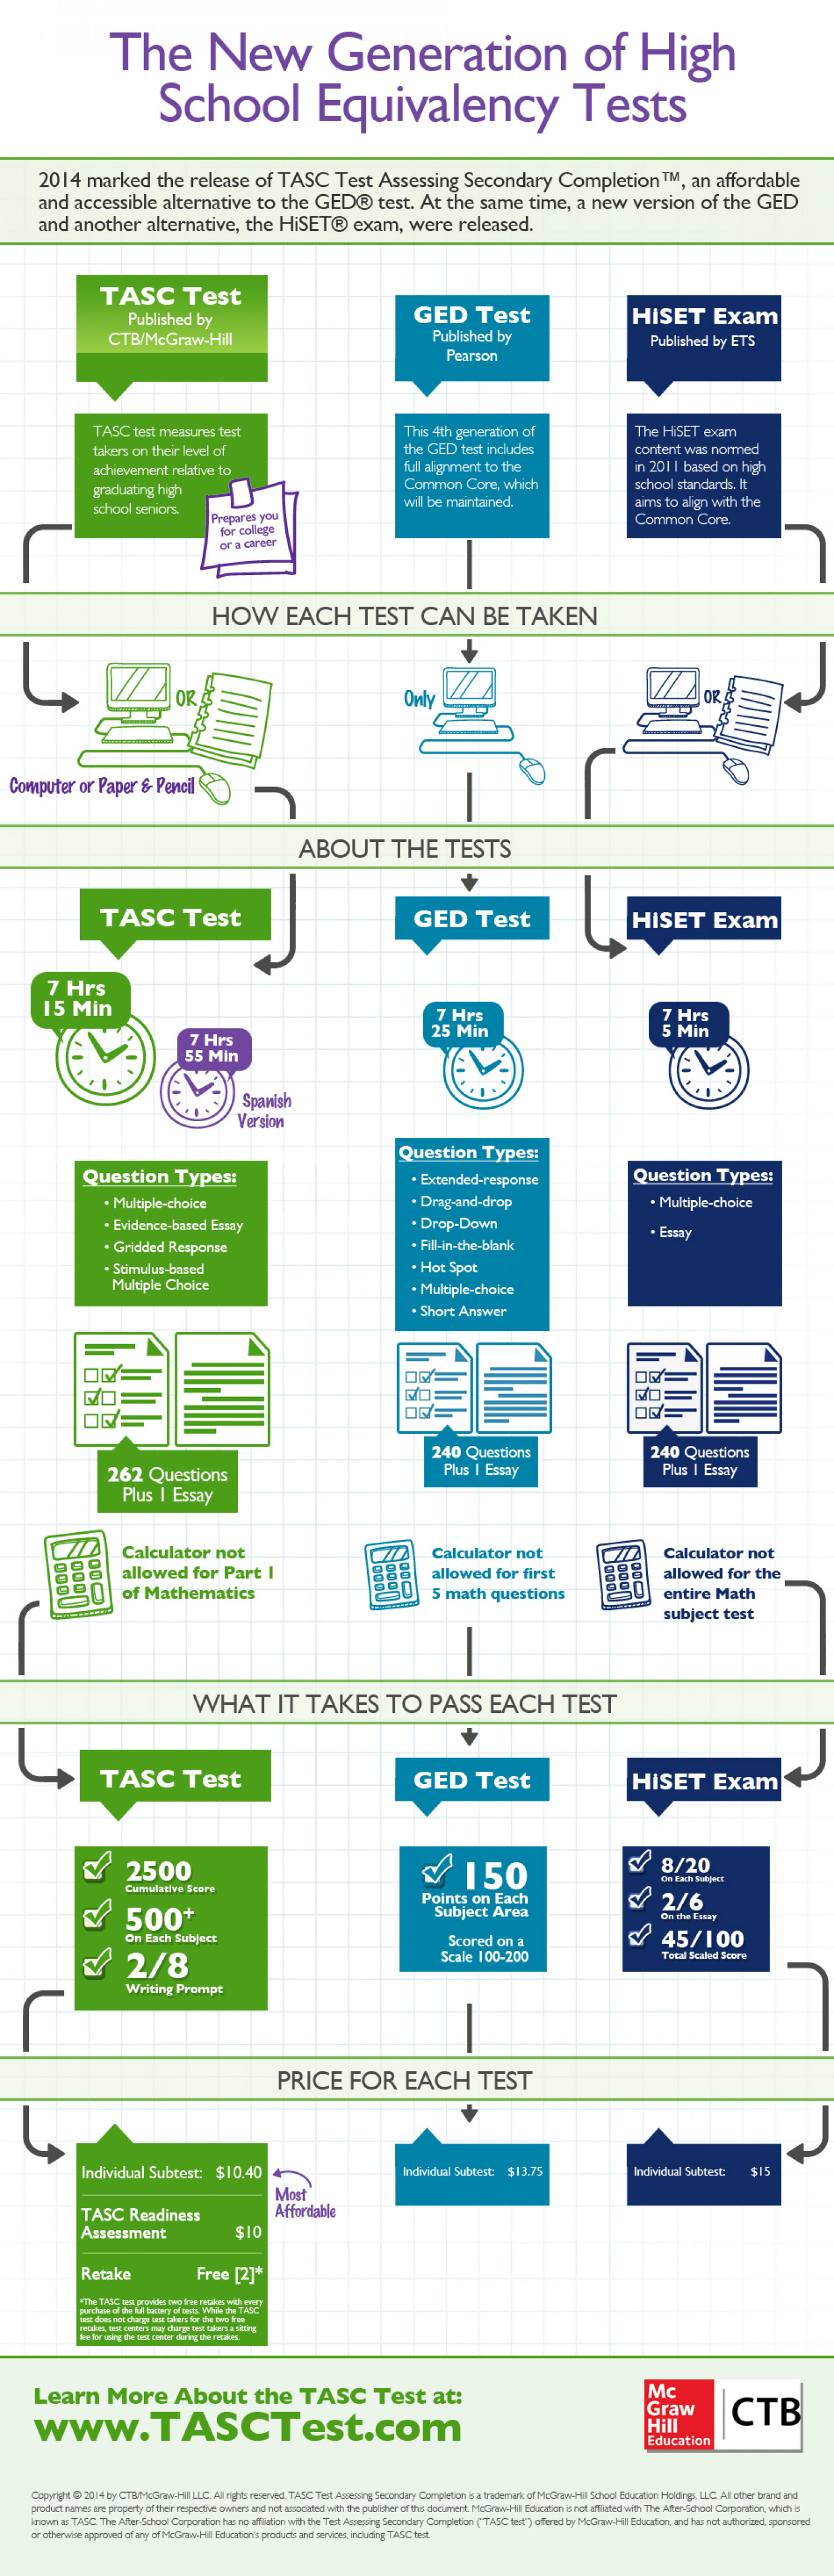 The New Generation of High School Equivalency Tests Infographic